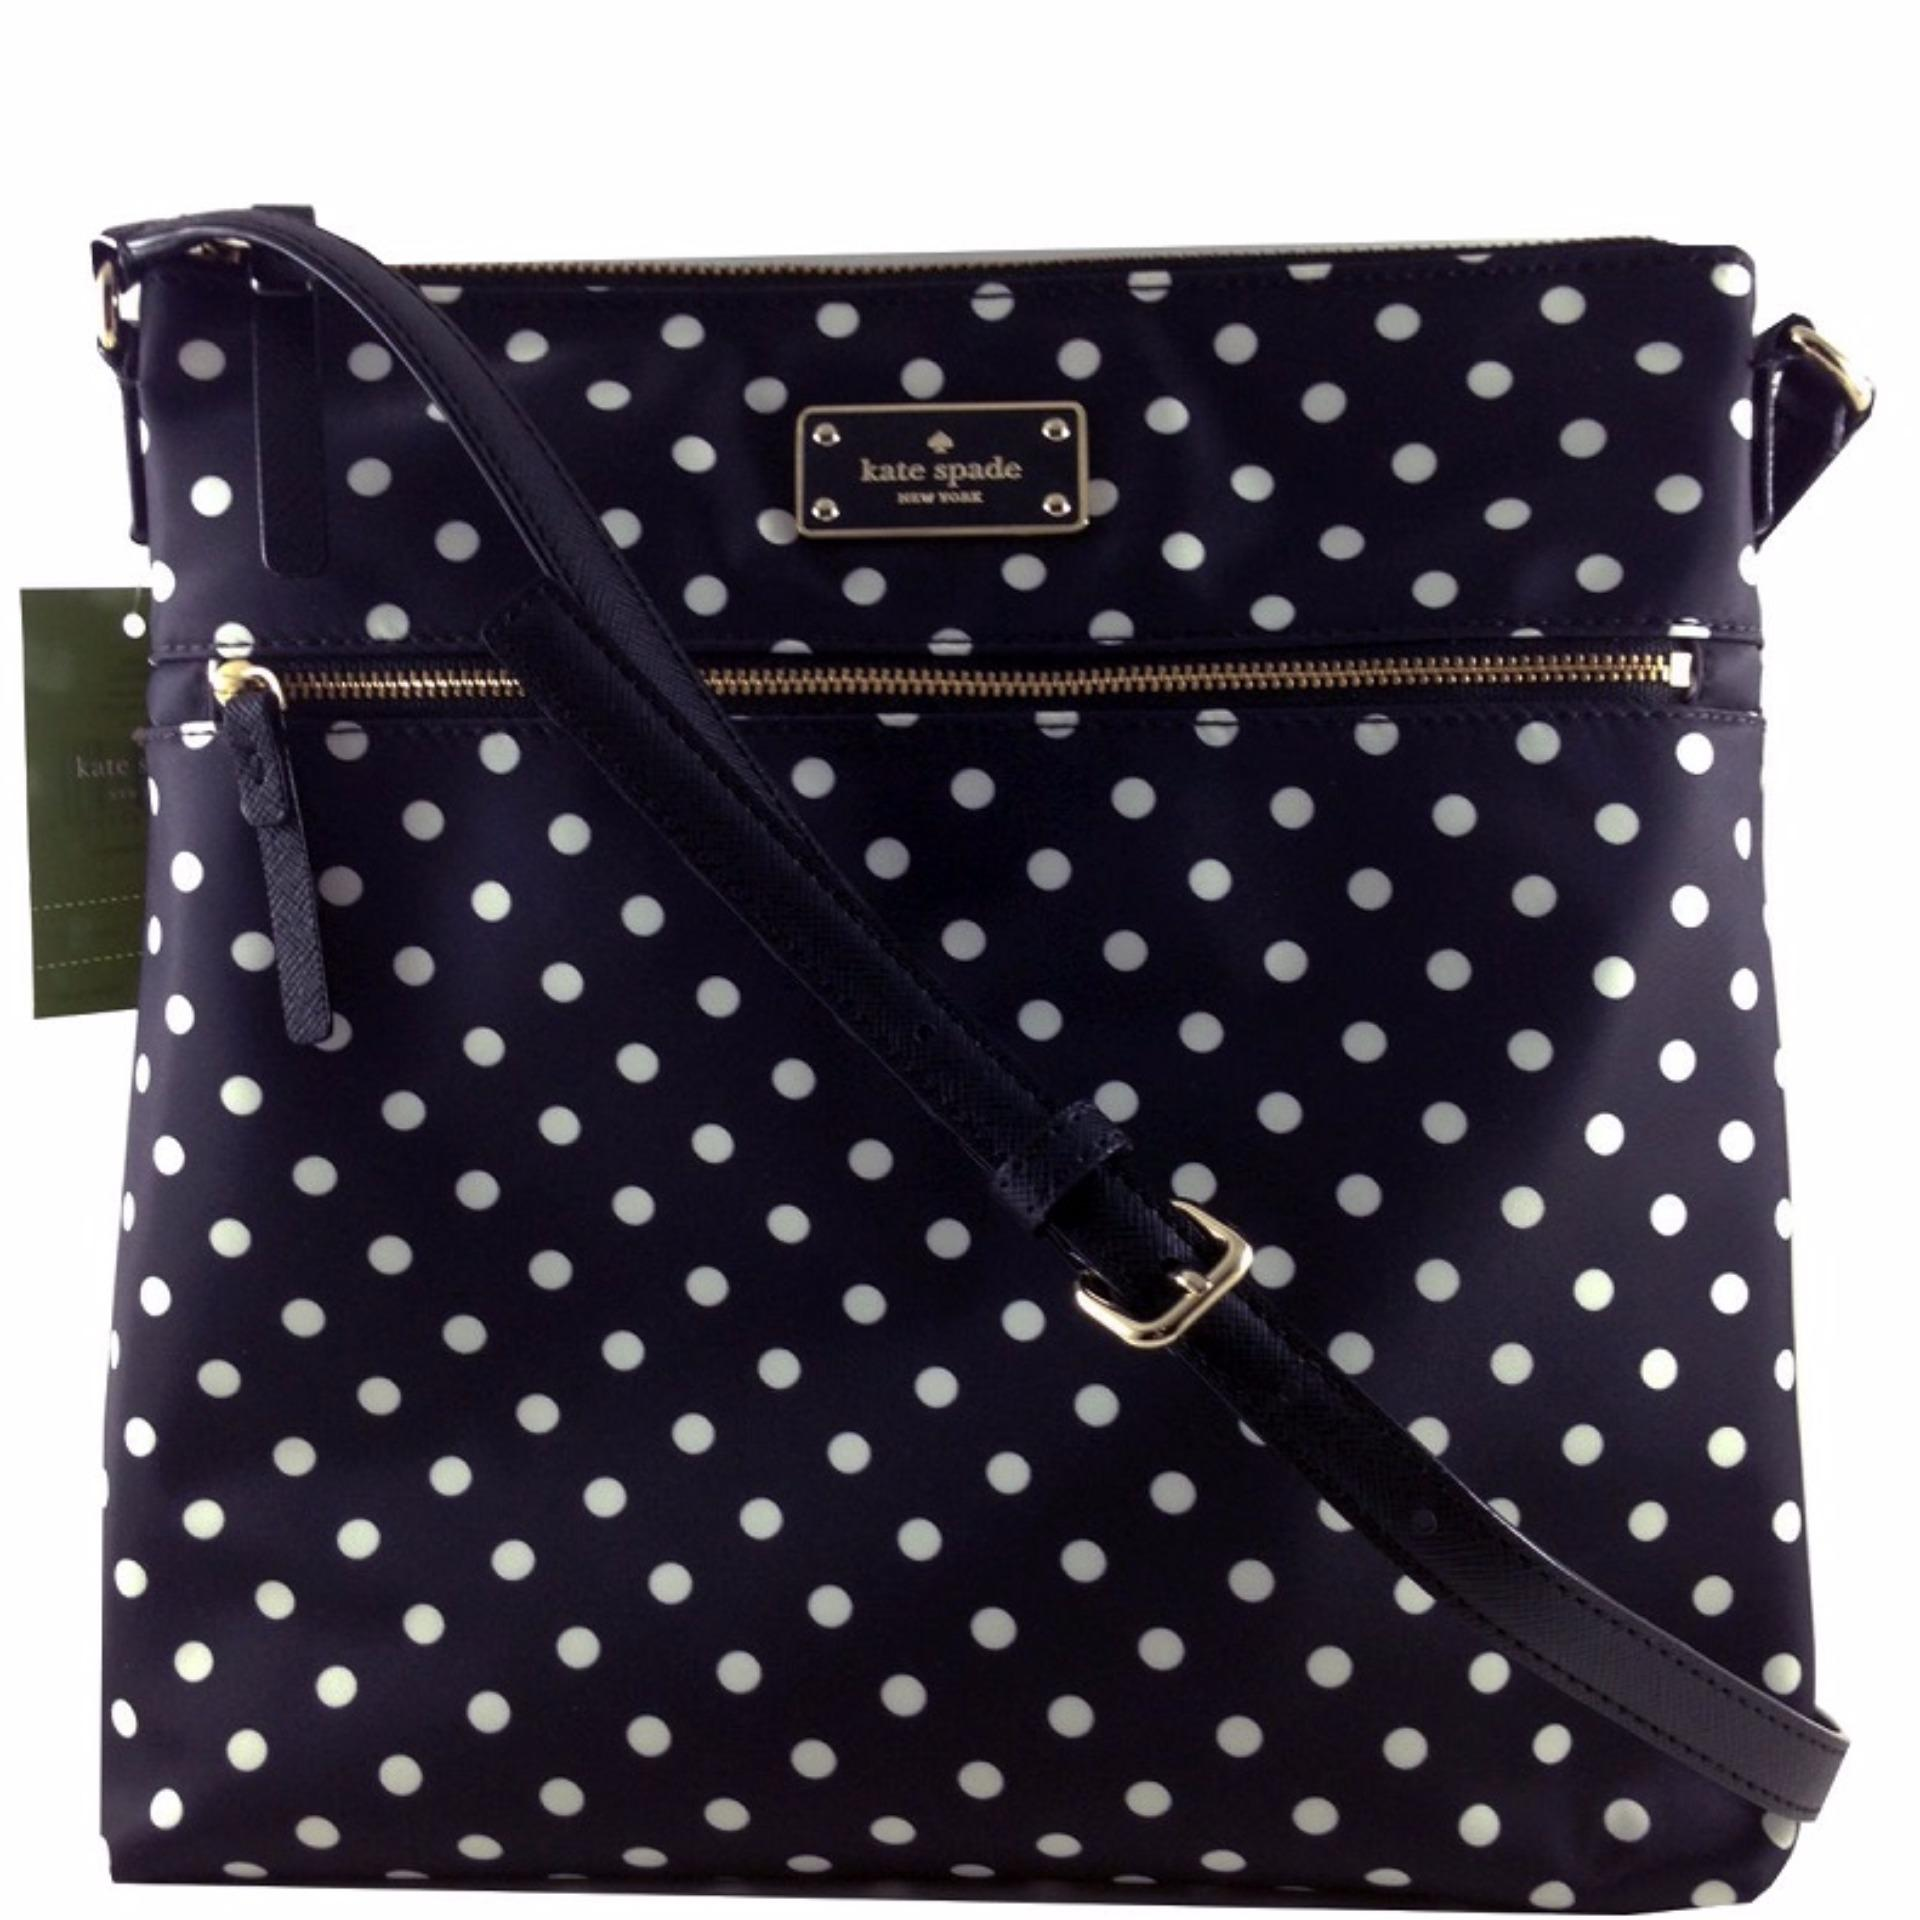 Philippines new authentic kate spade keisha wkru3618 blake new authentic kate spade keisha wkru3618 blake avenue crossbody polka dot bag junglespirit Image collections